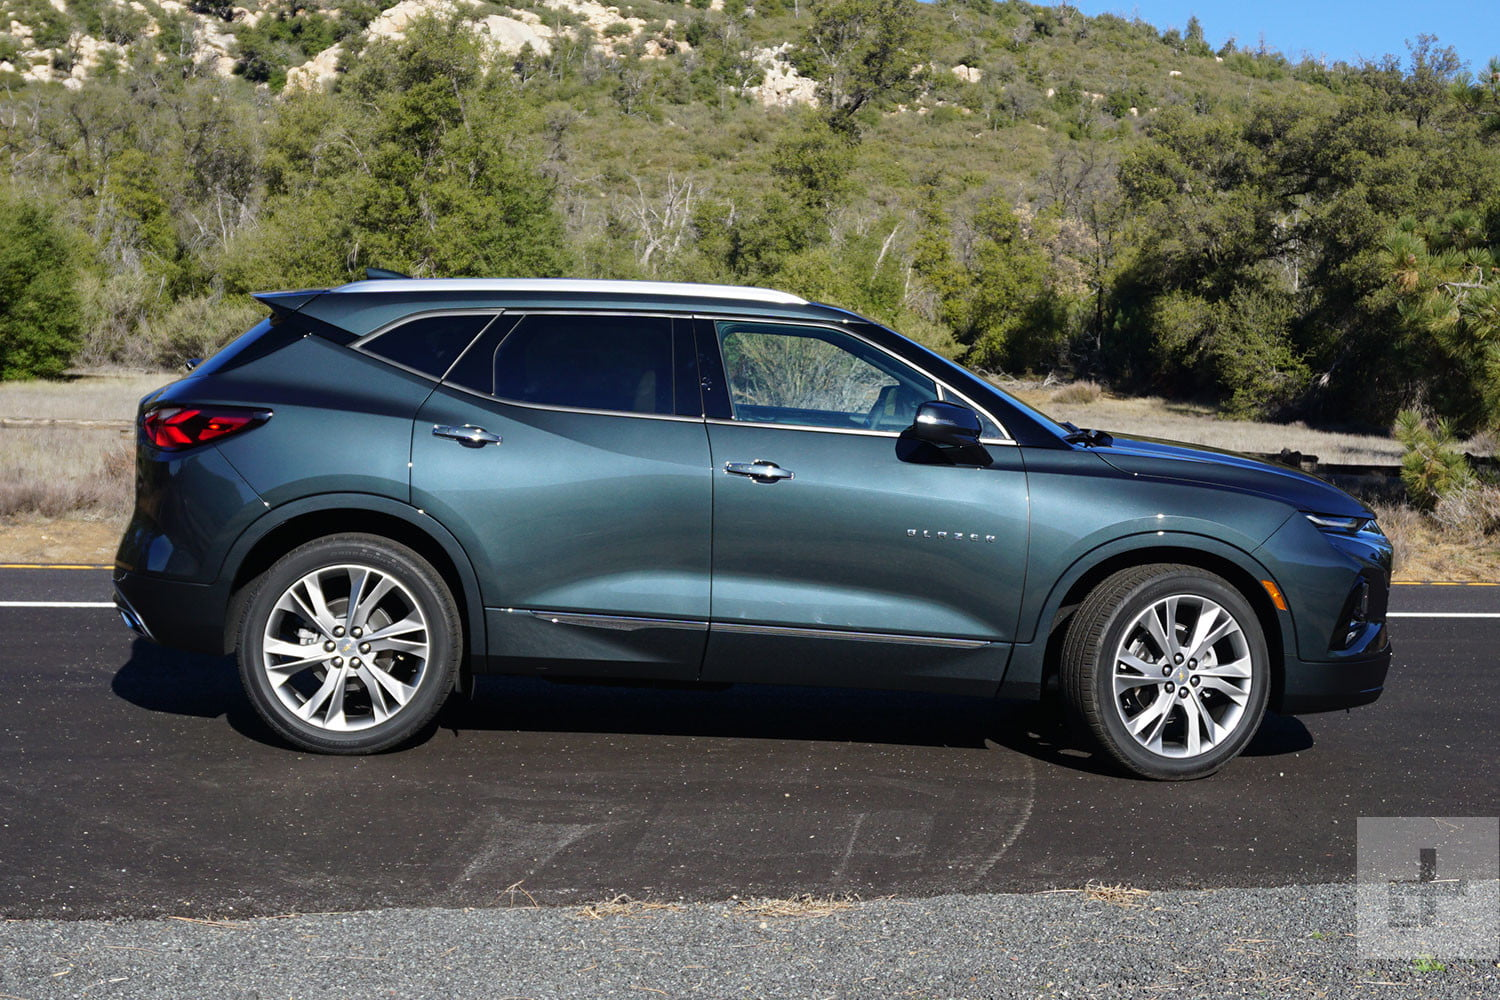 2019 Chevrolet Blazer First Drive Review | Digital Trends